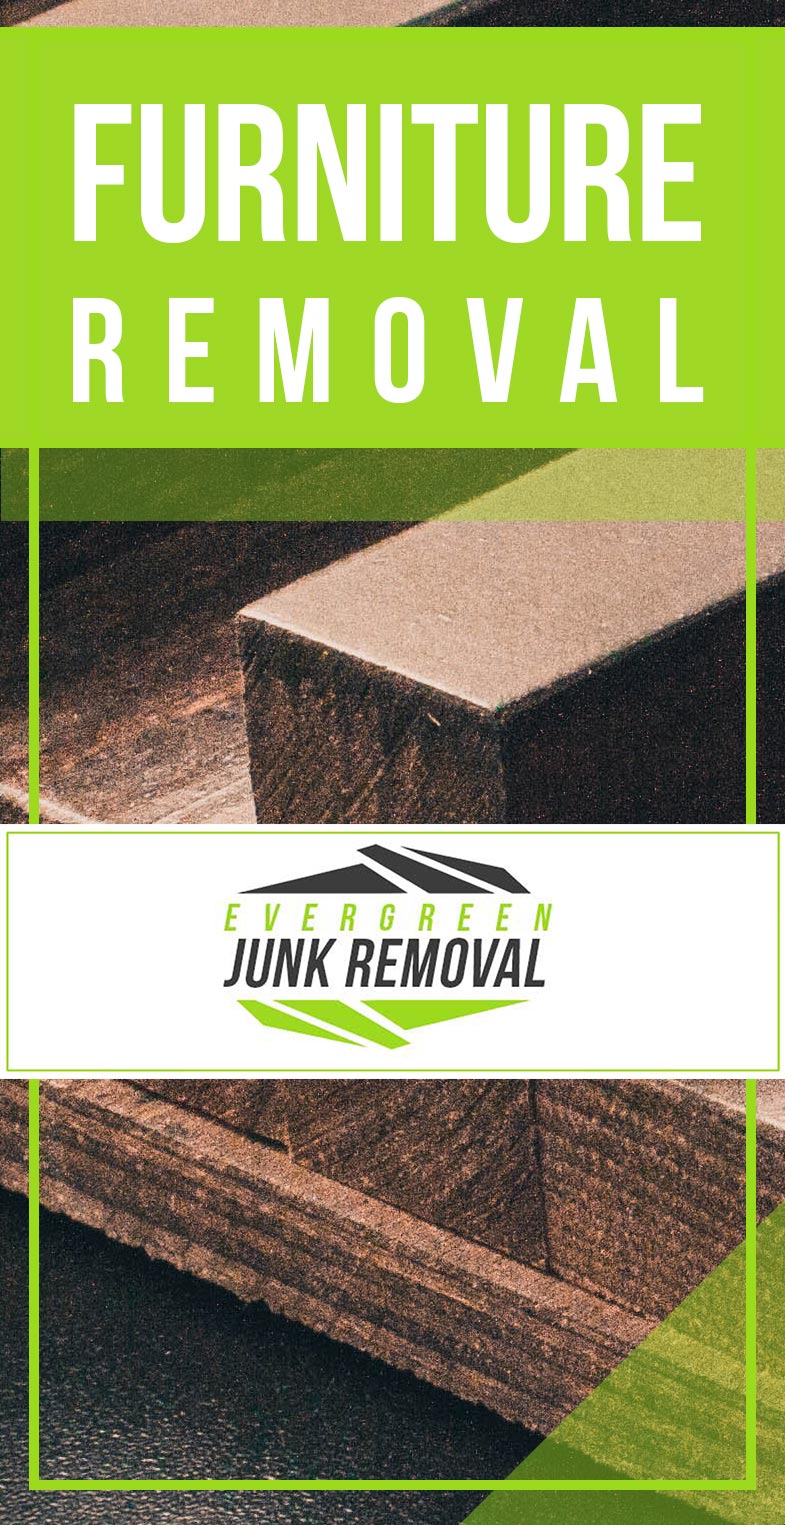 Sunnyvale Furniture Removal